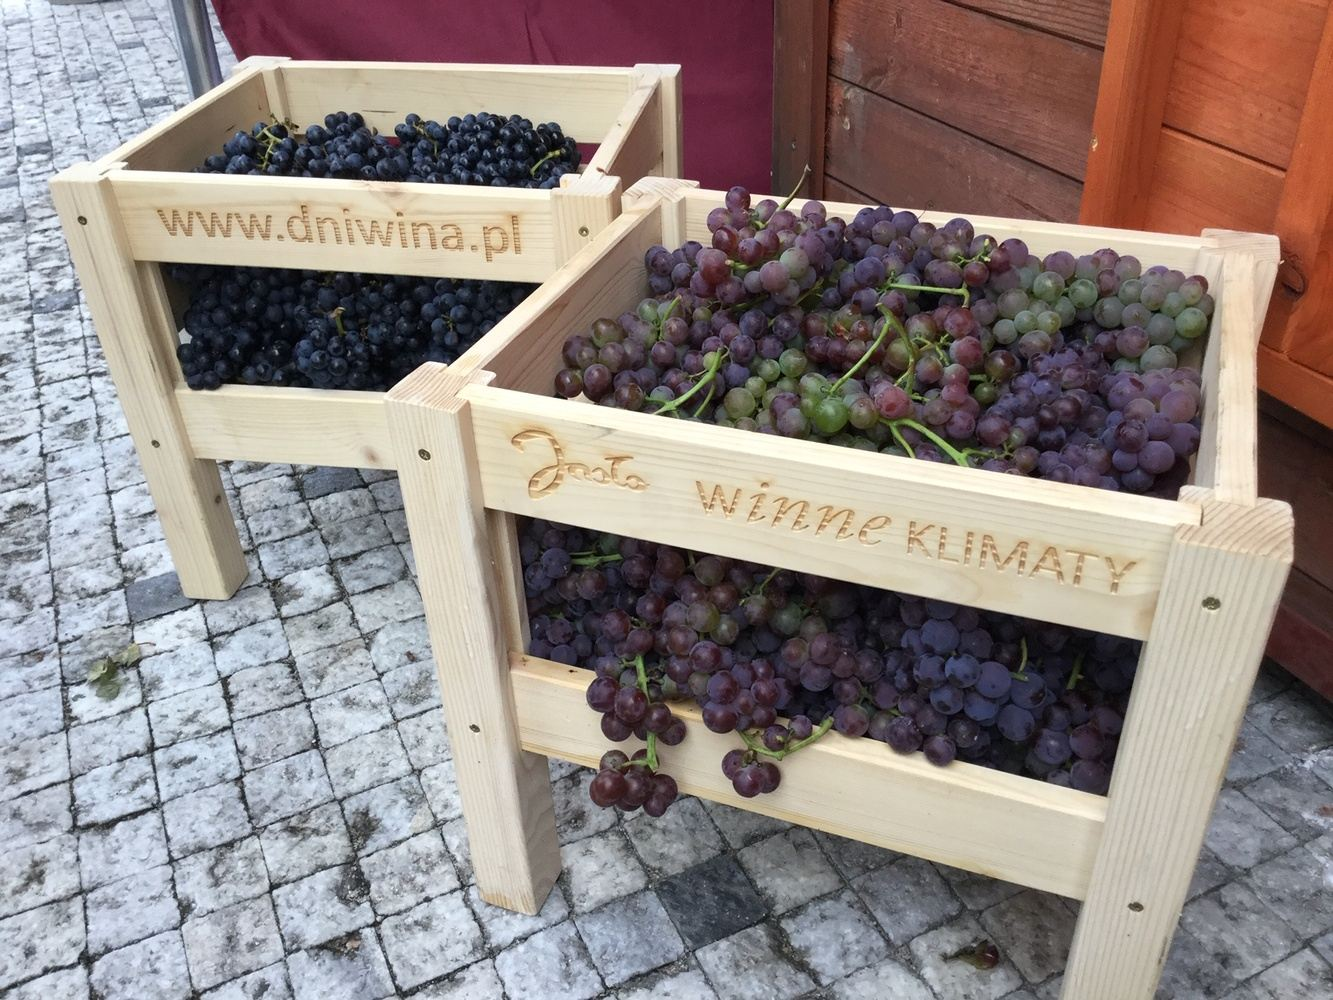 Five Days with Polish Wine in Subcarpathia